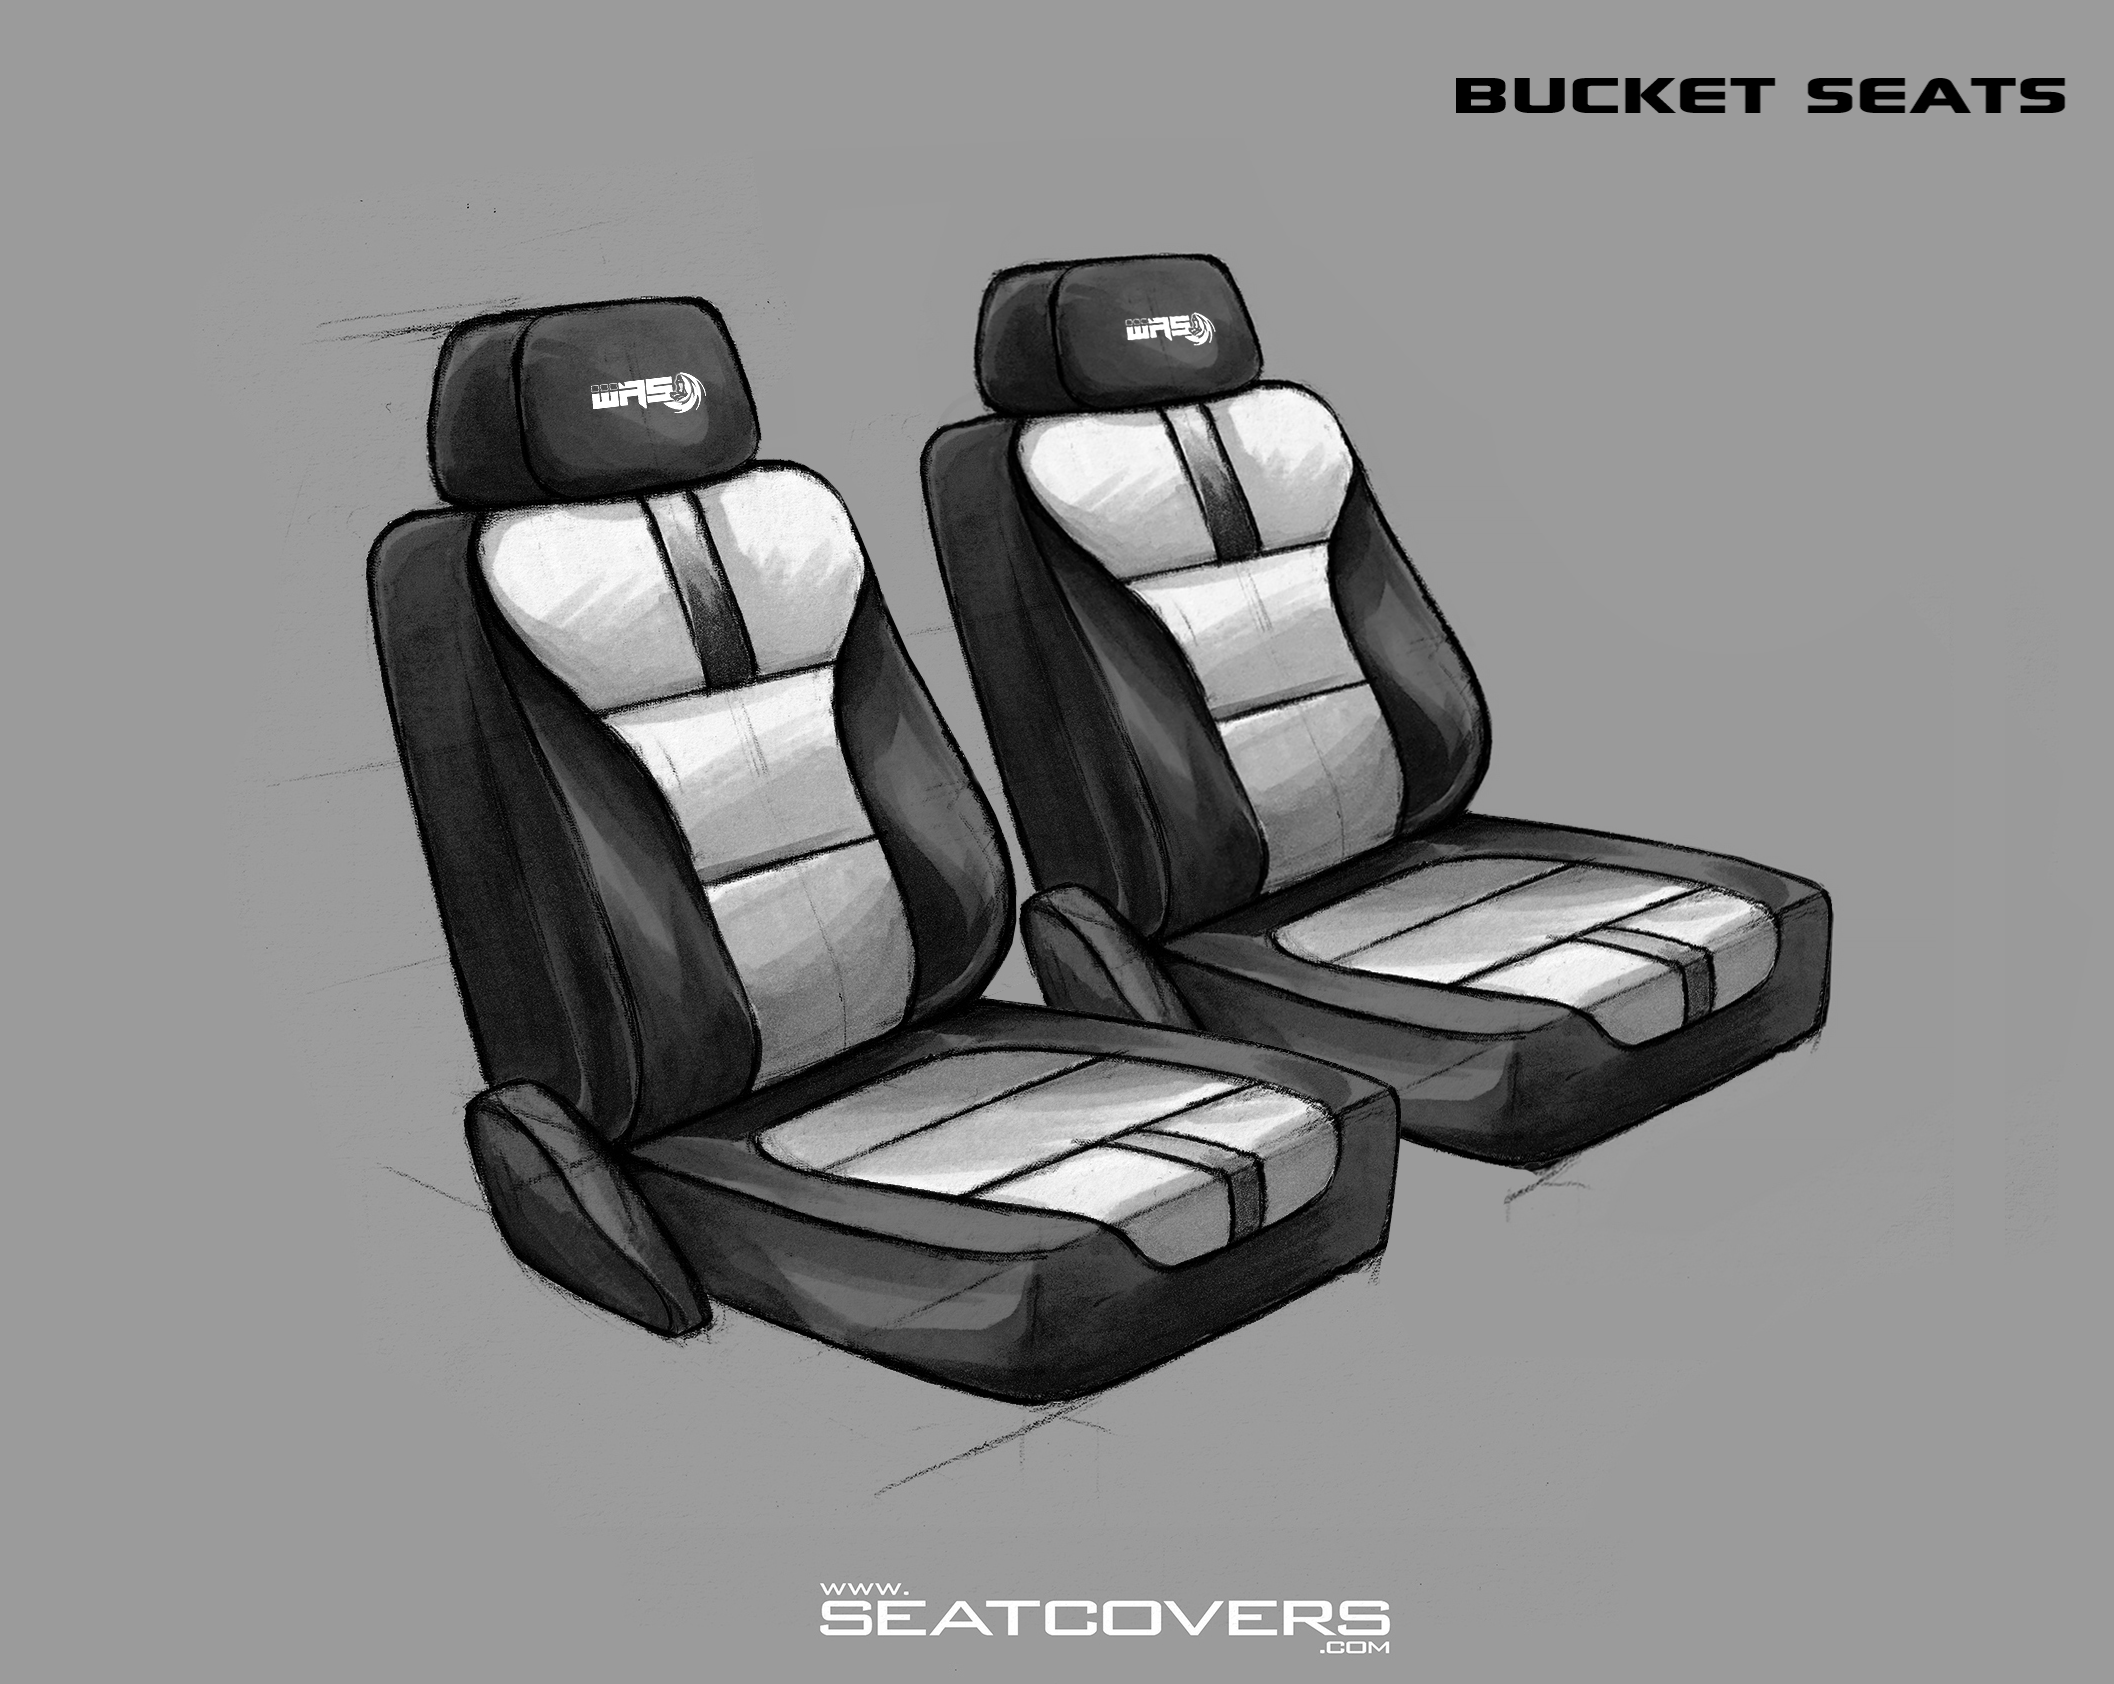 Jeep Seat Covers Wrangler Seat Jeep Wrangler Front seat covers seatcovers.com heavy duty seat covers for trucks